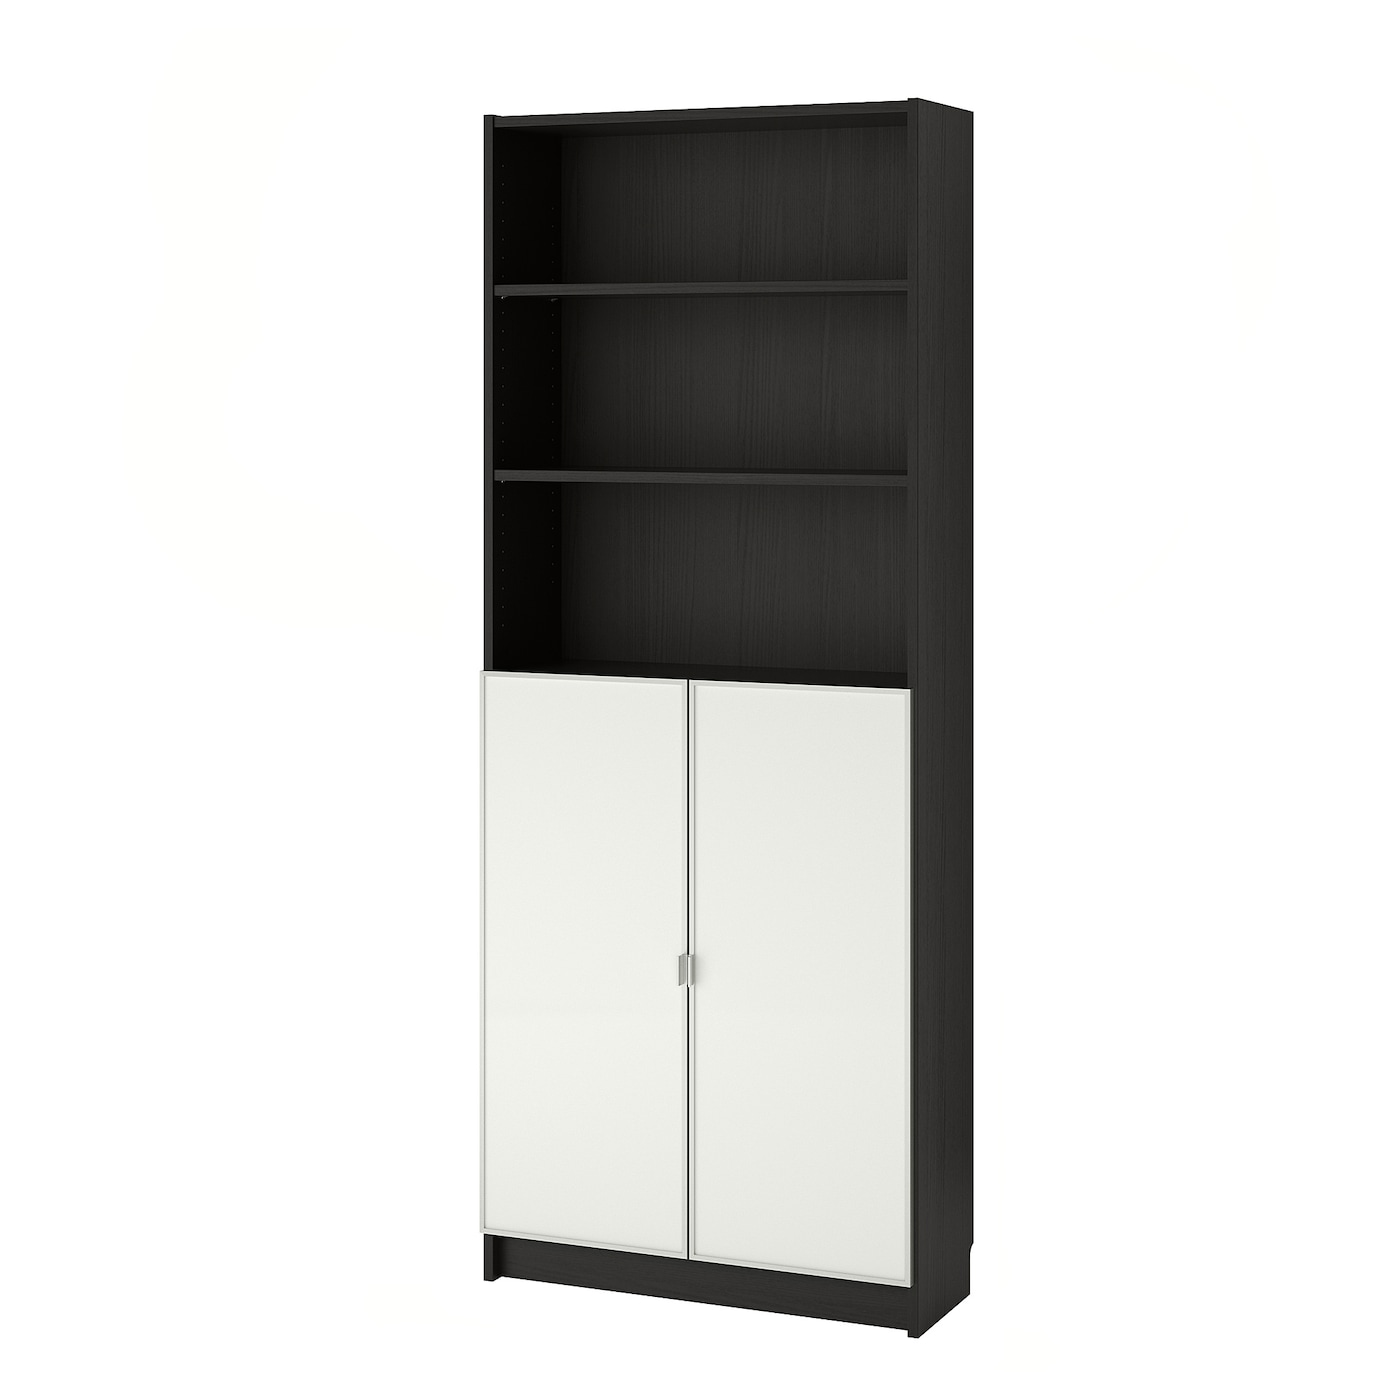 billy morliden bookcase with glass doors black brown glass 80 x 30 x 202 cm ikea. Black Bedroom Furniture Sets. Home Design Ideas